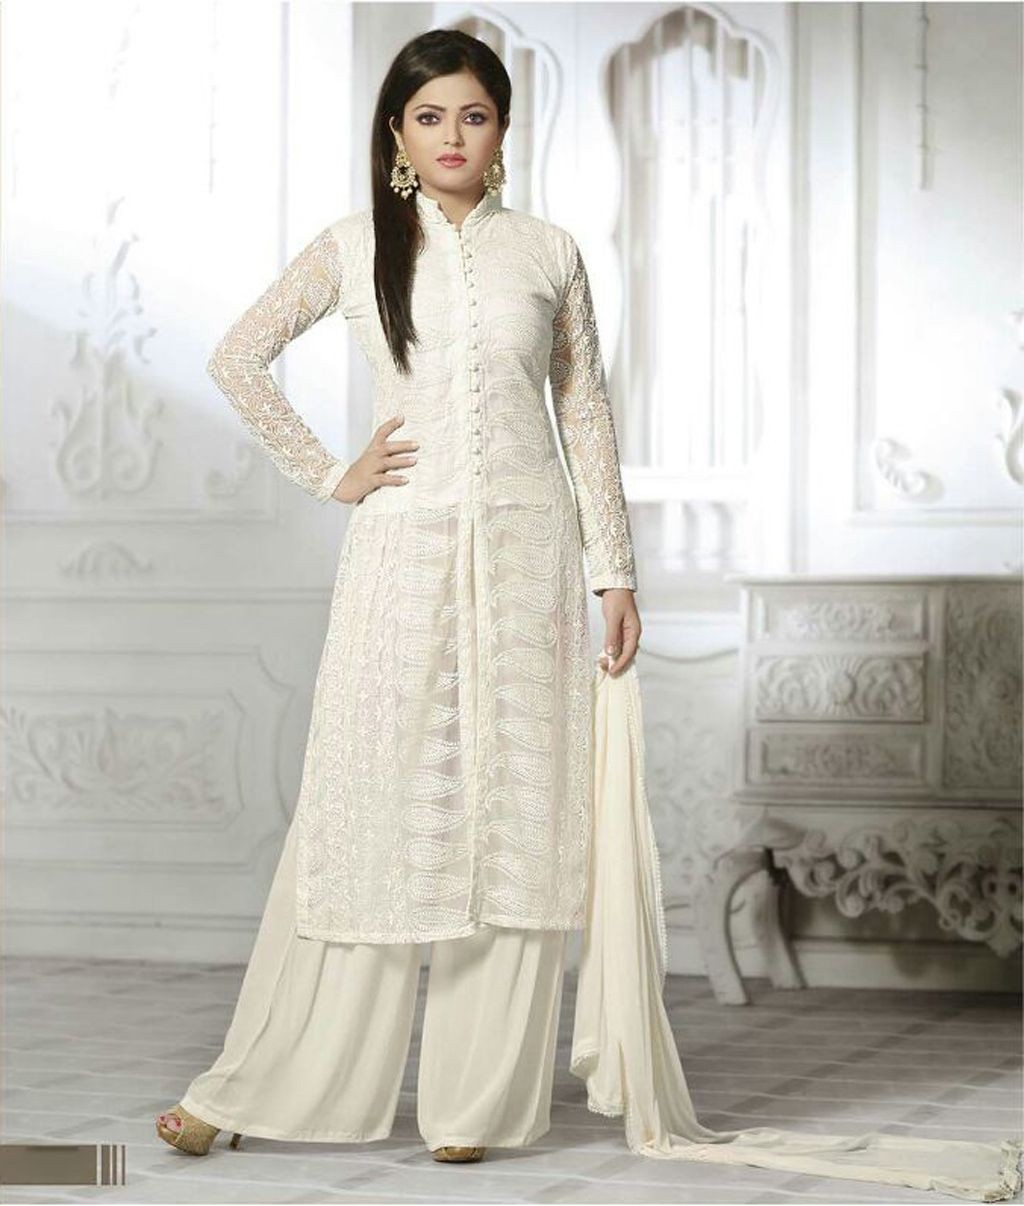 017 Essay Example On My Favourite Dress Salwar Sensational Kameez Large